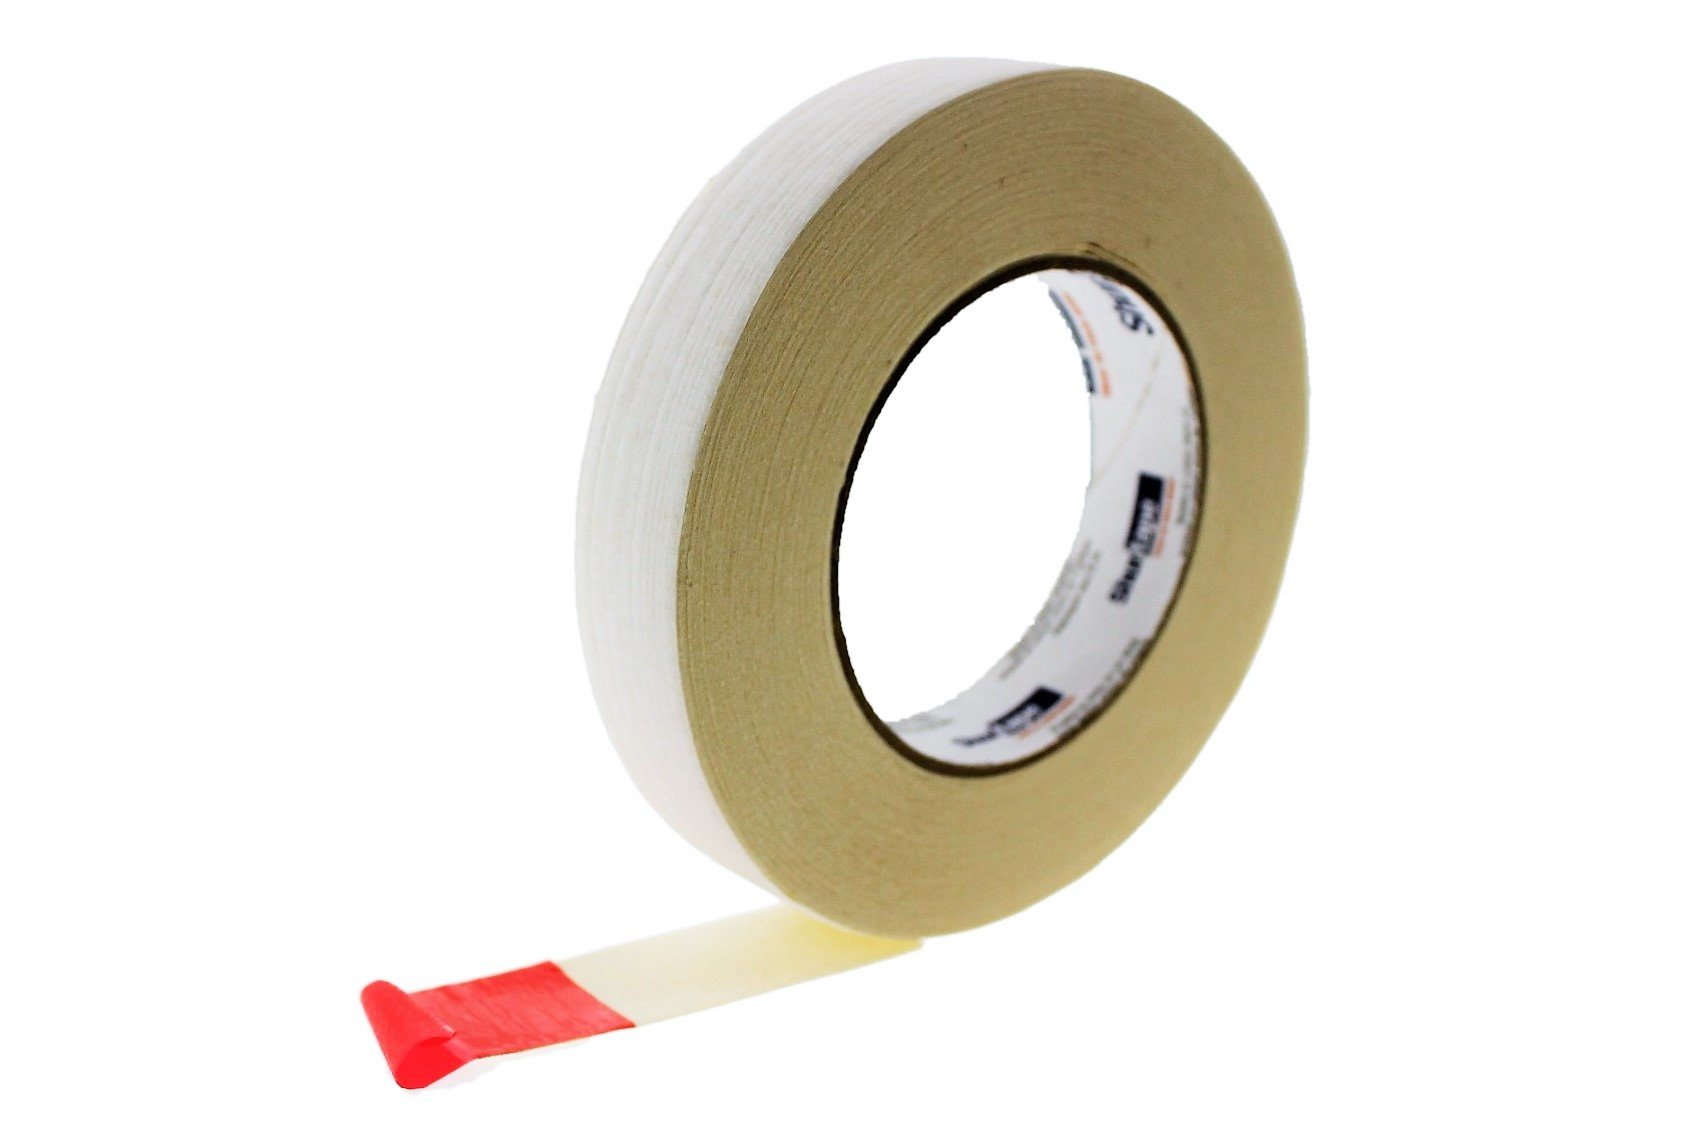 1'' Shurtape Golf Tape GG200 Easy Application Double Sided Club Repair Wrap Grip Installation Resists Wrinkling! Double Sided Masking Tape Cream Mounting Poster Board Trophy Flooring 108' 36 yd